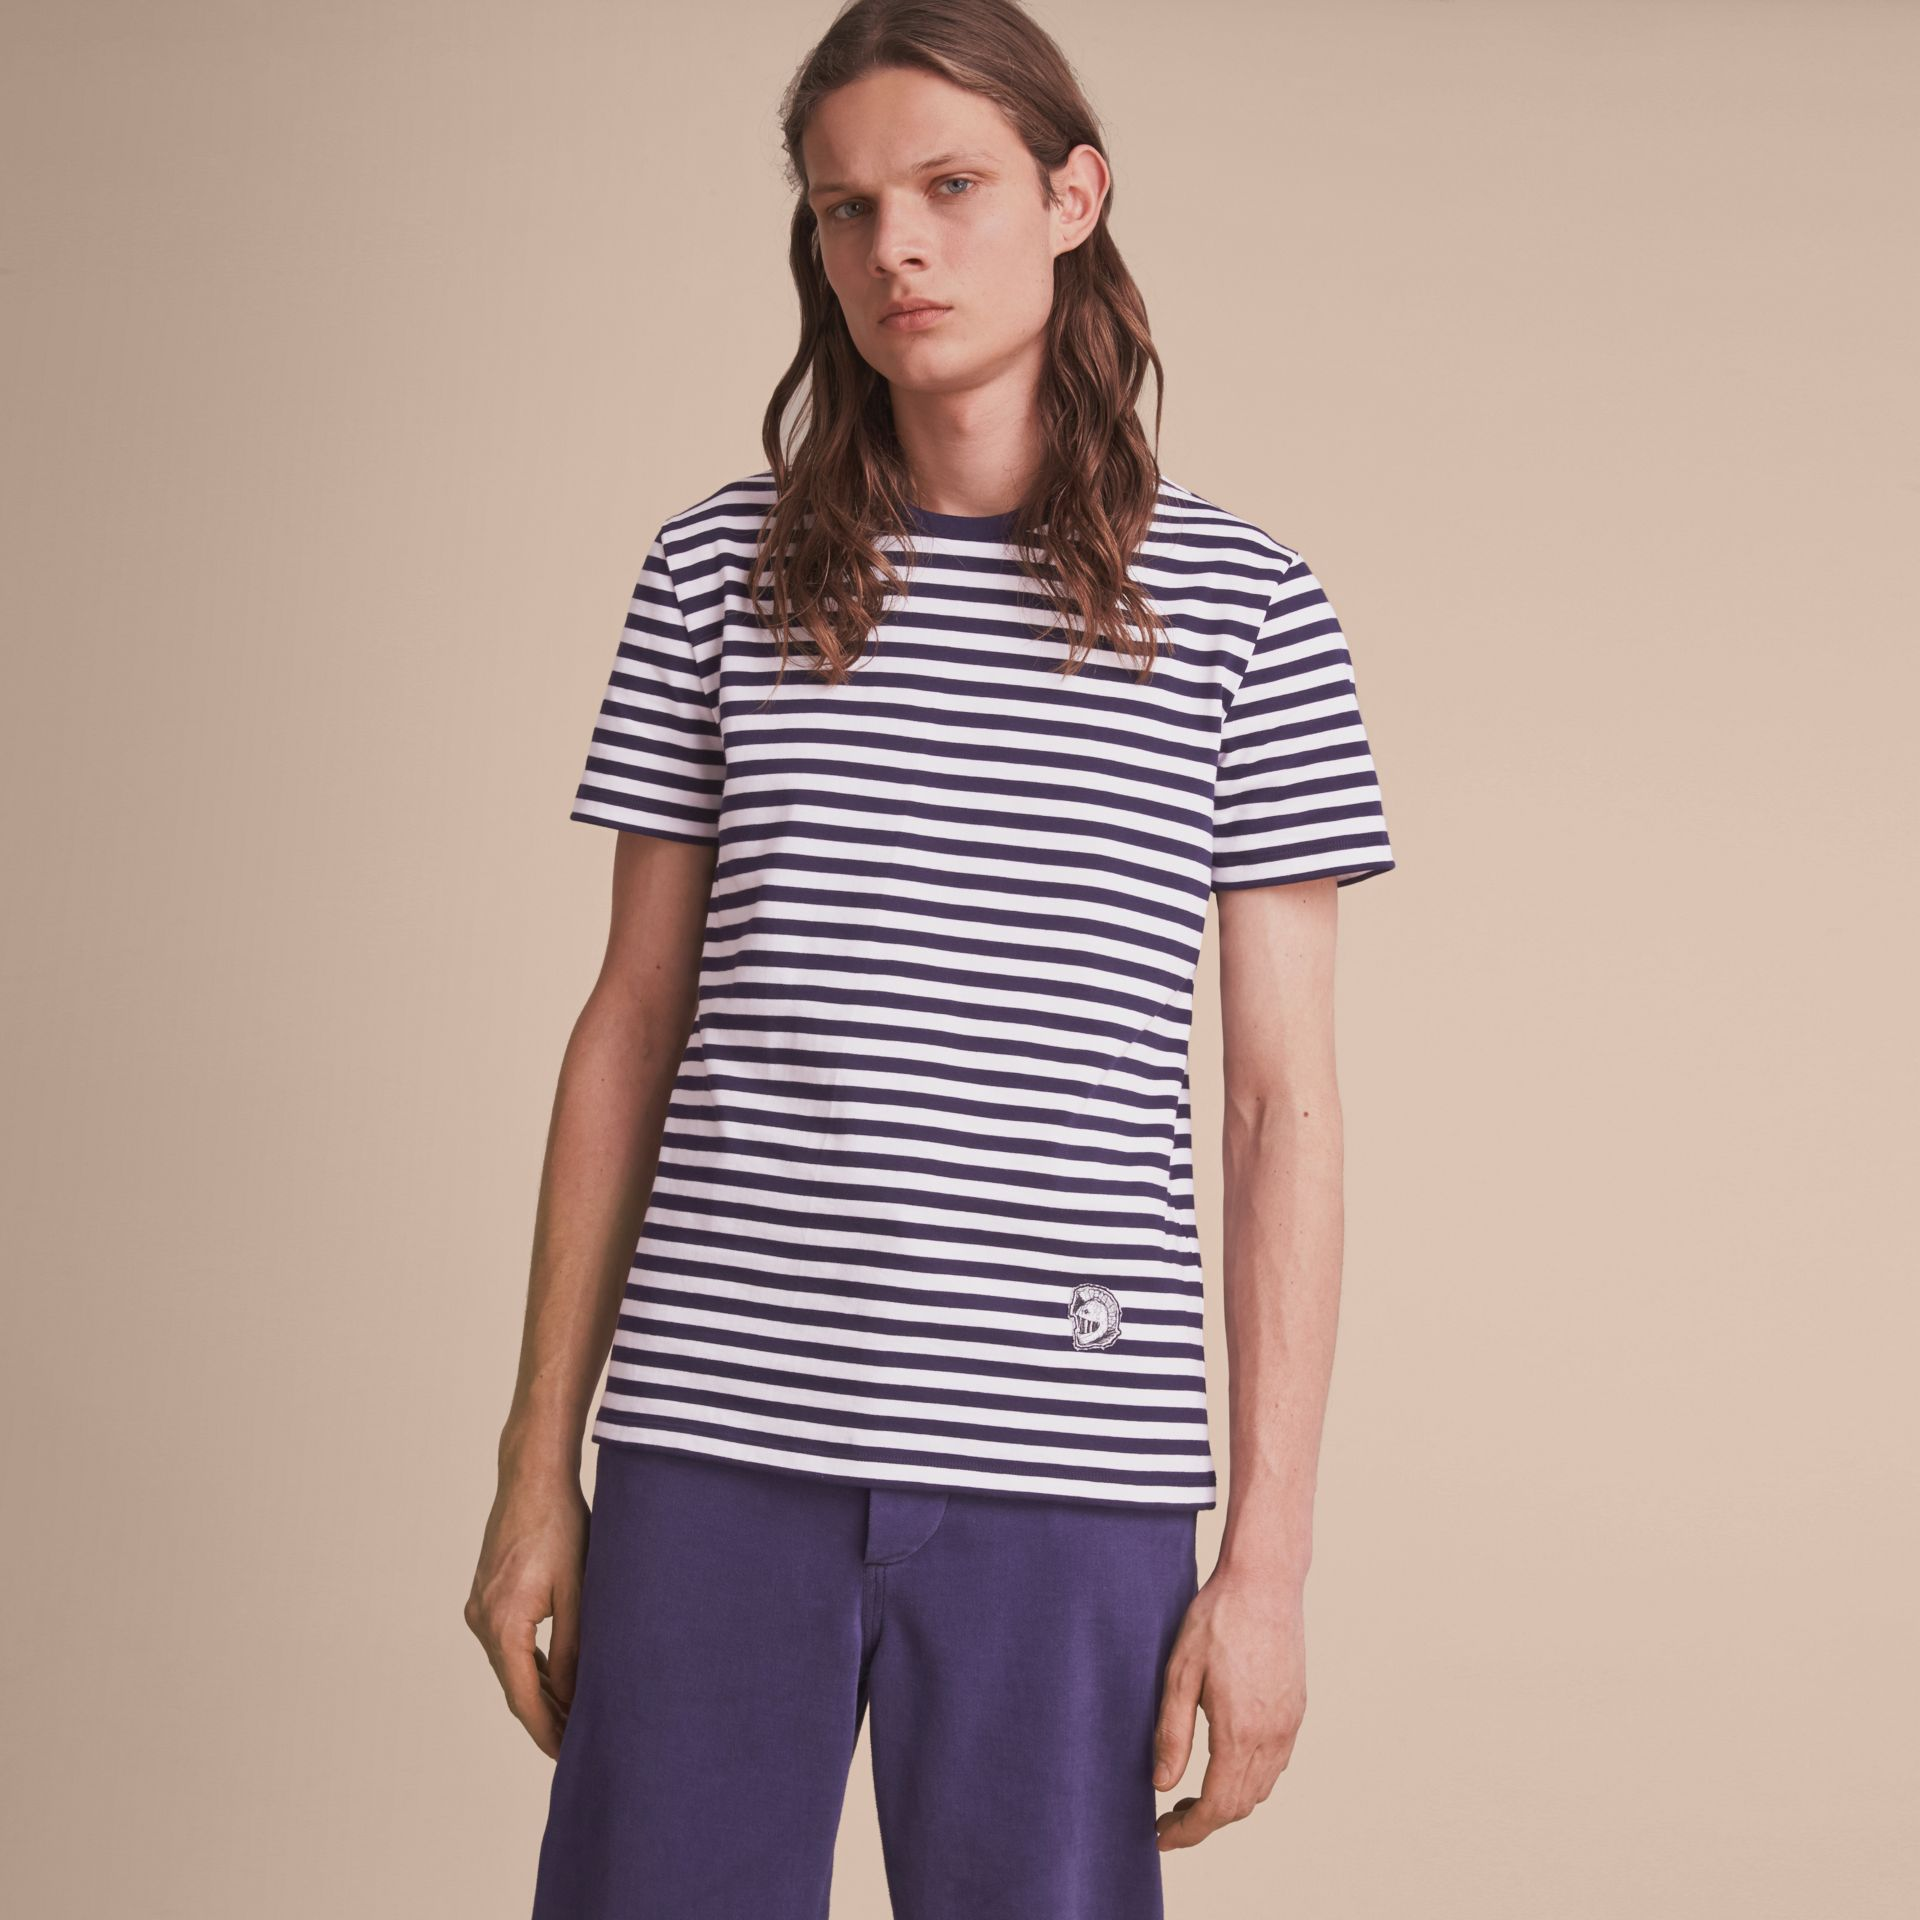 Breton Stripe Cotton T-shirt with Pallas Helmet Motif - Men | Burberry Australia - gallery image 6